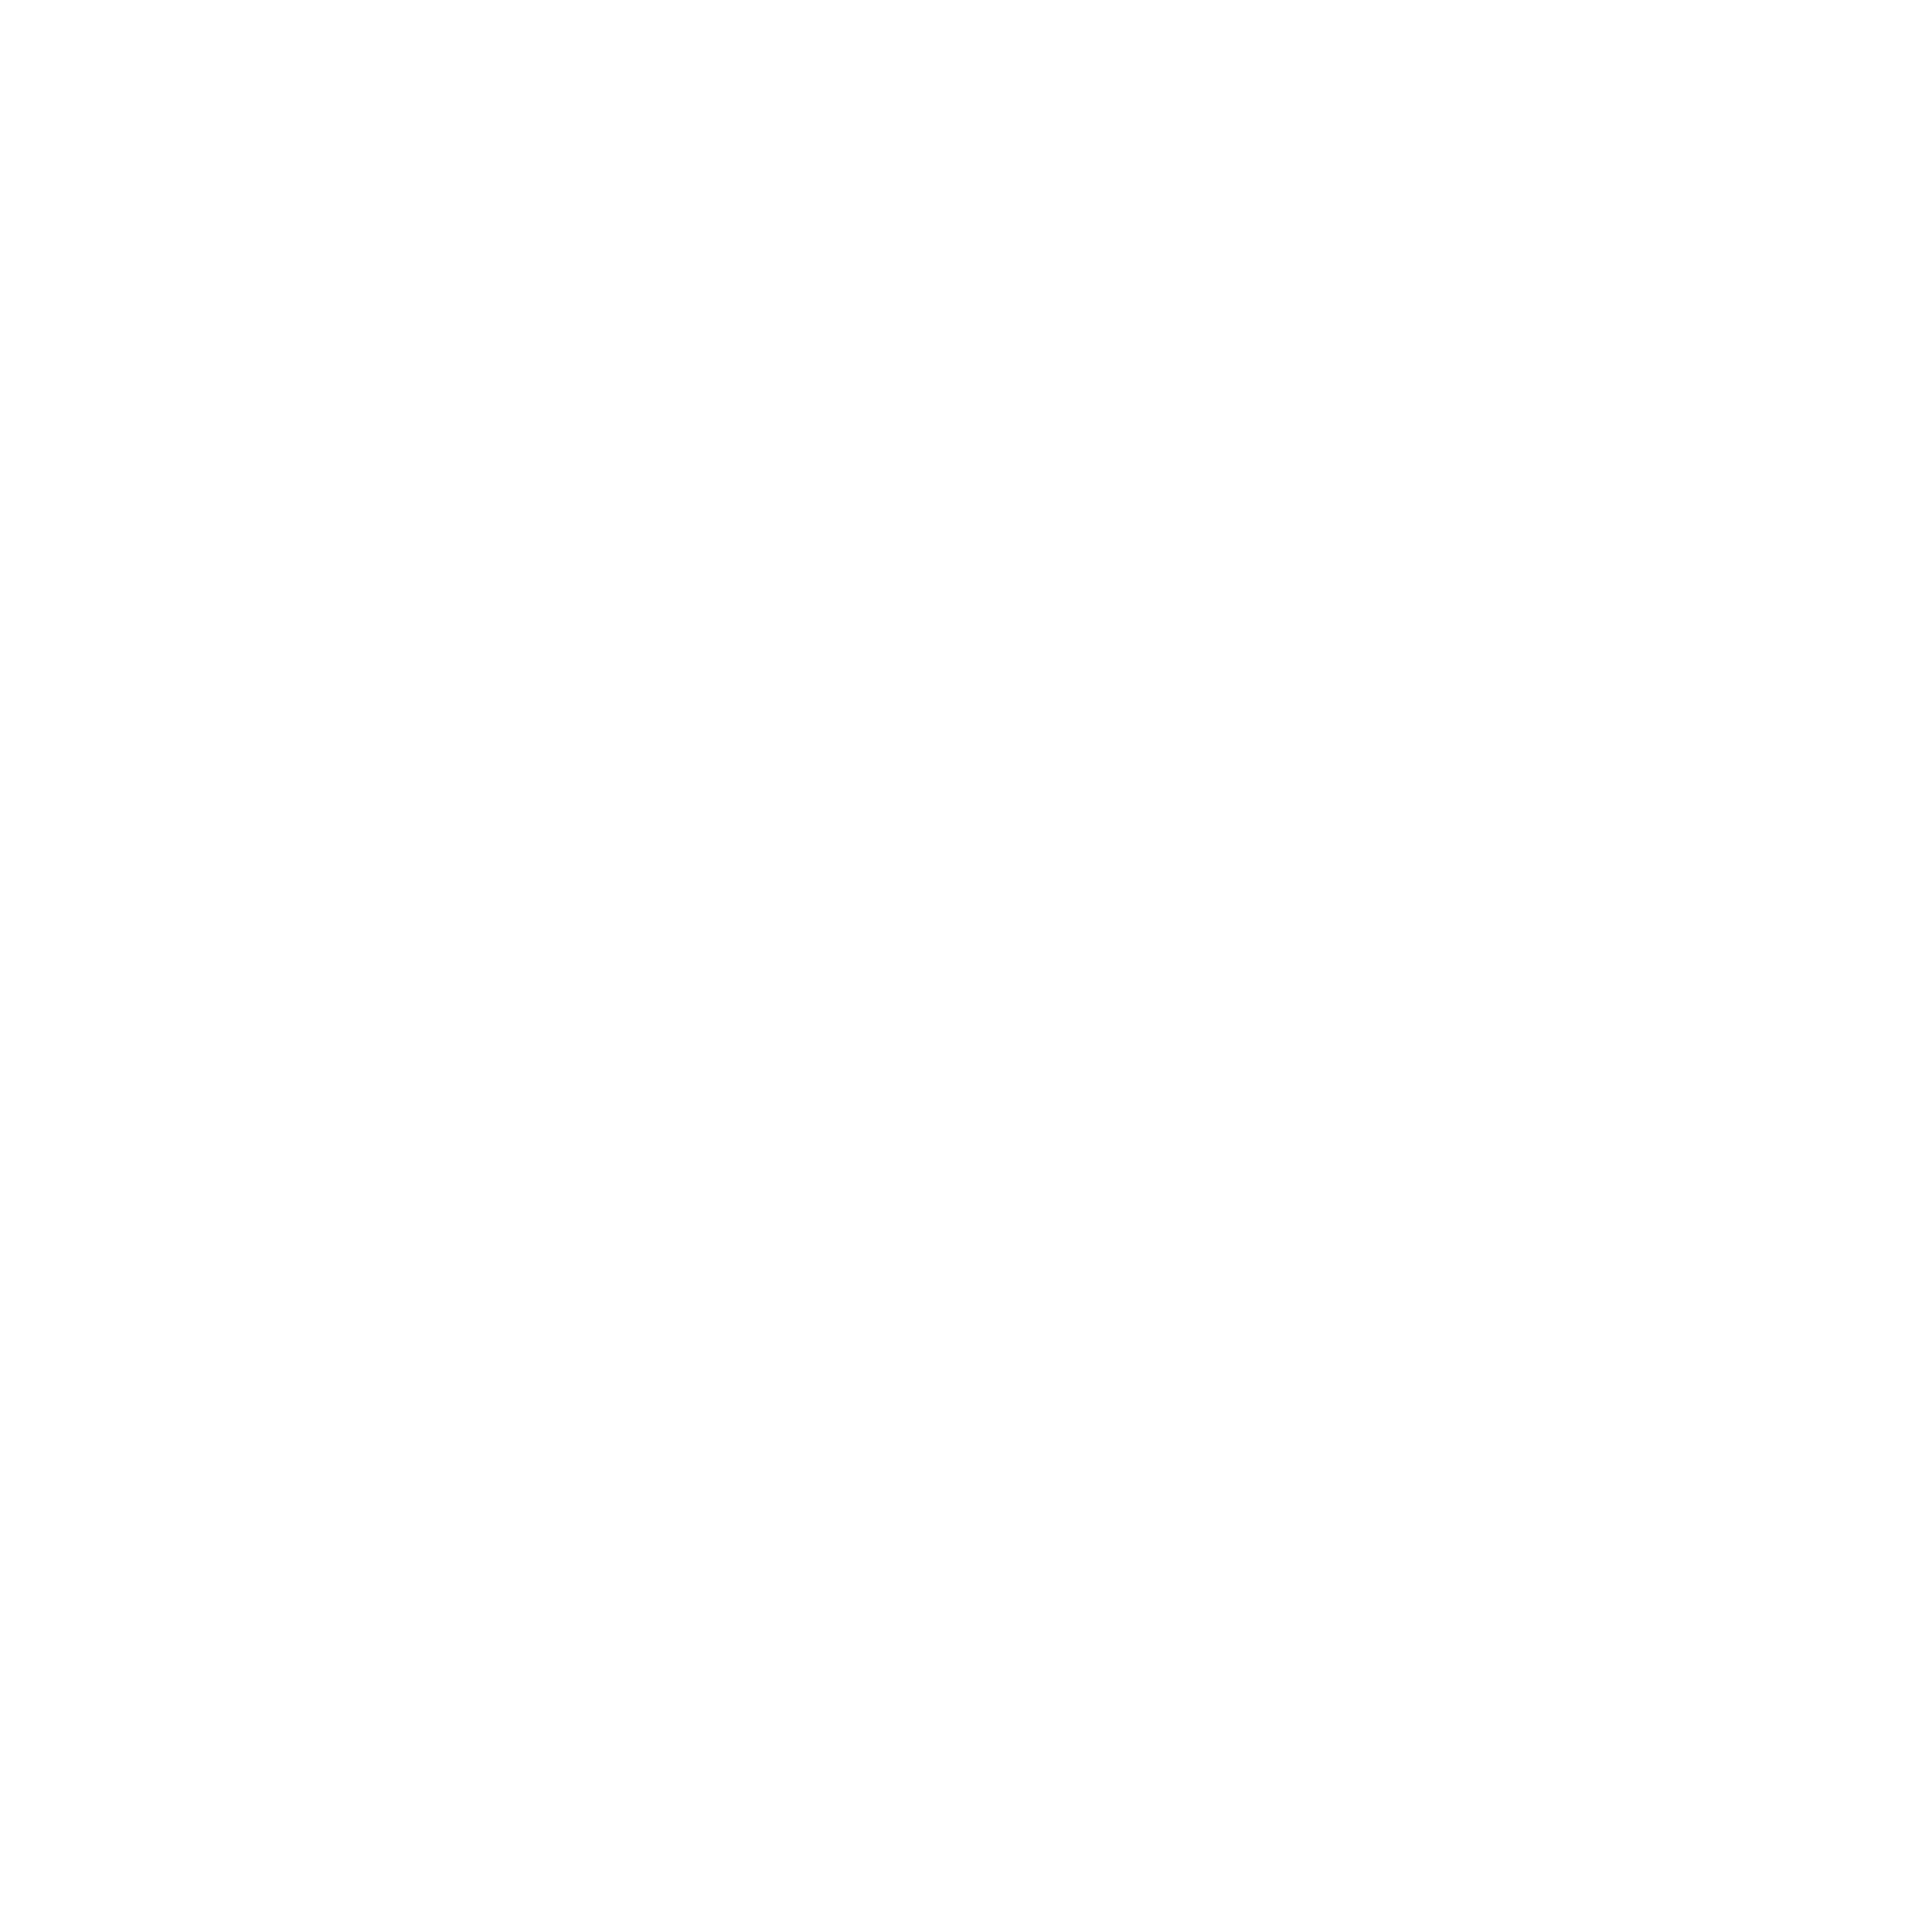 2019 Featured_Educator white.png